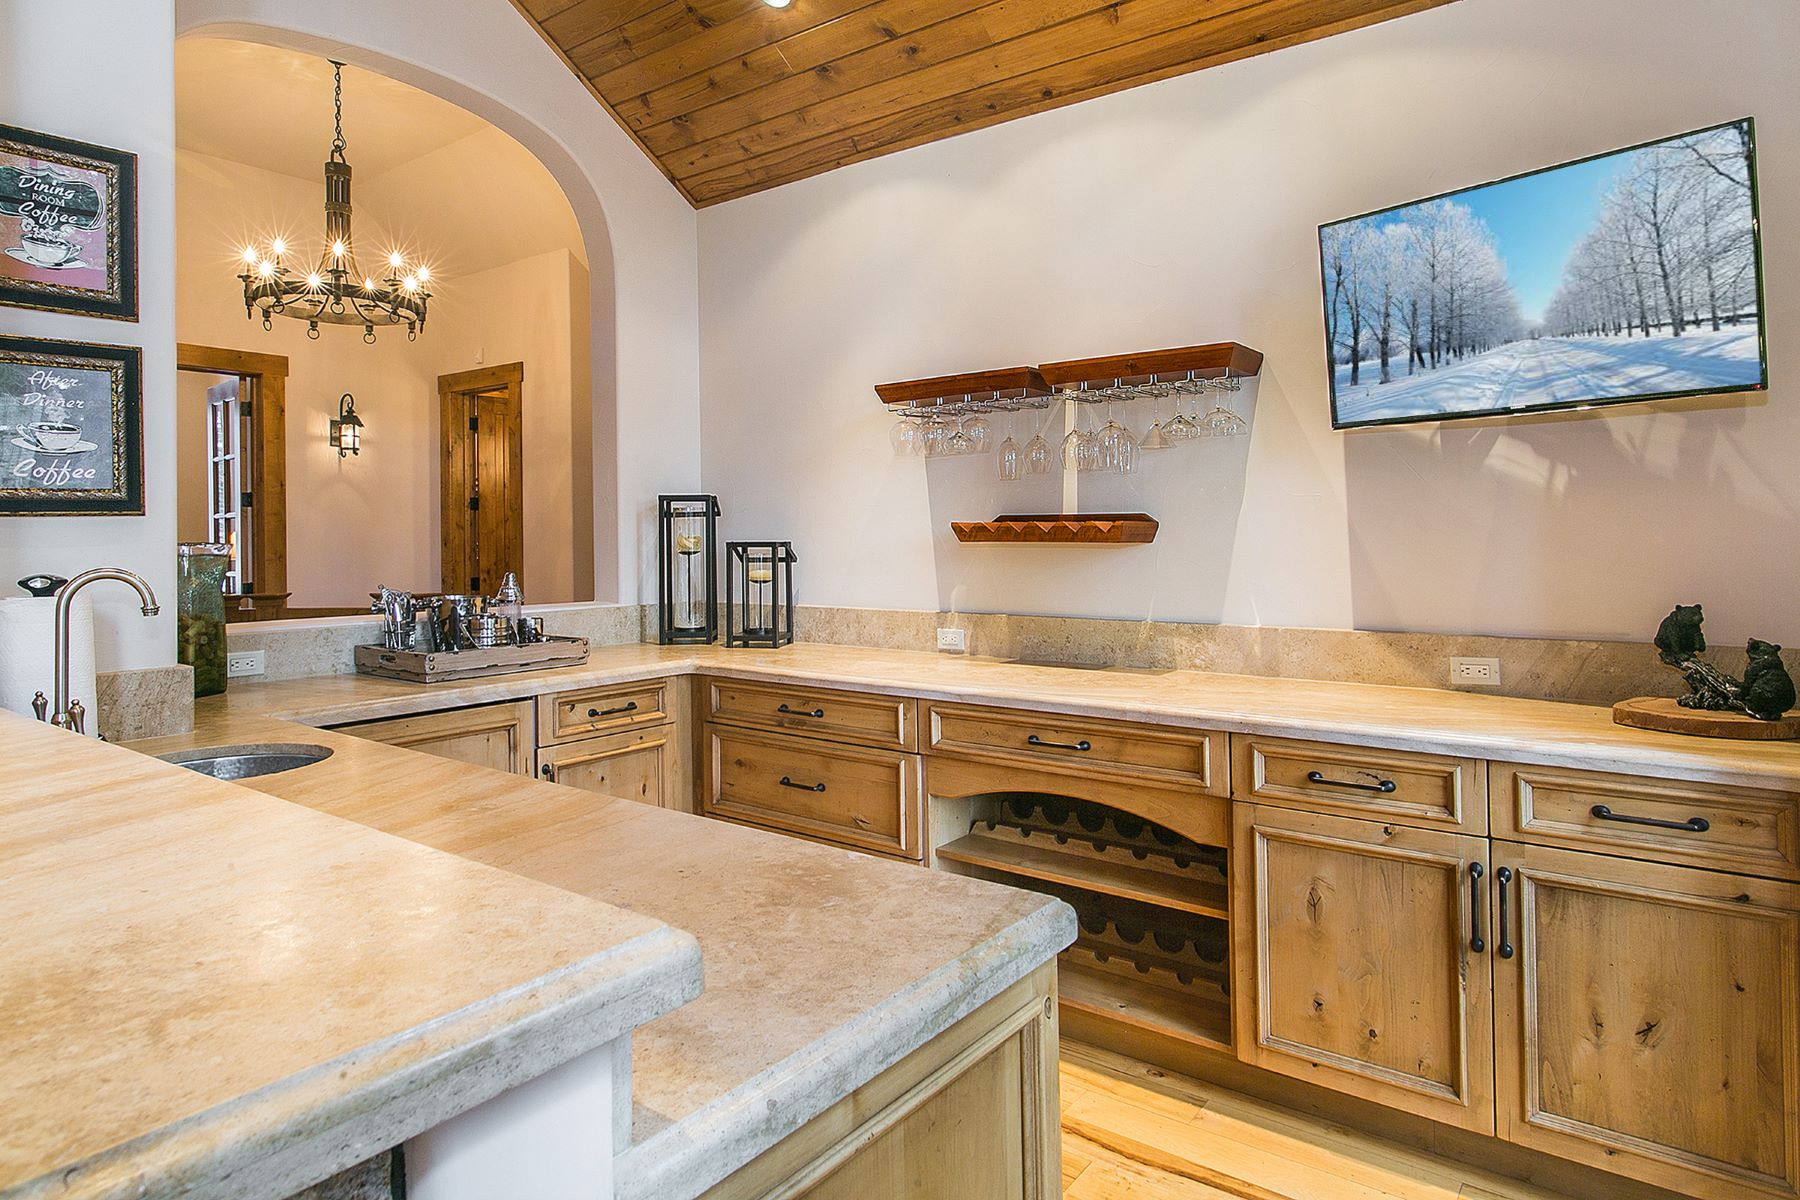 fractional ownership prop for Active at 2203 Silver Fox Truckee California 76161 2203 Silver Fox Court Truckee, California 96161 United States